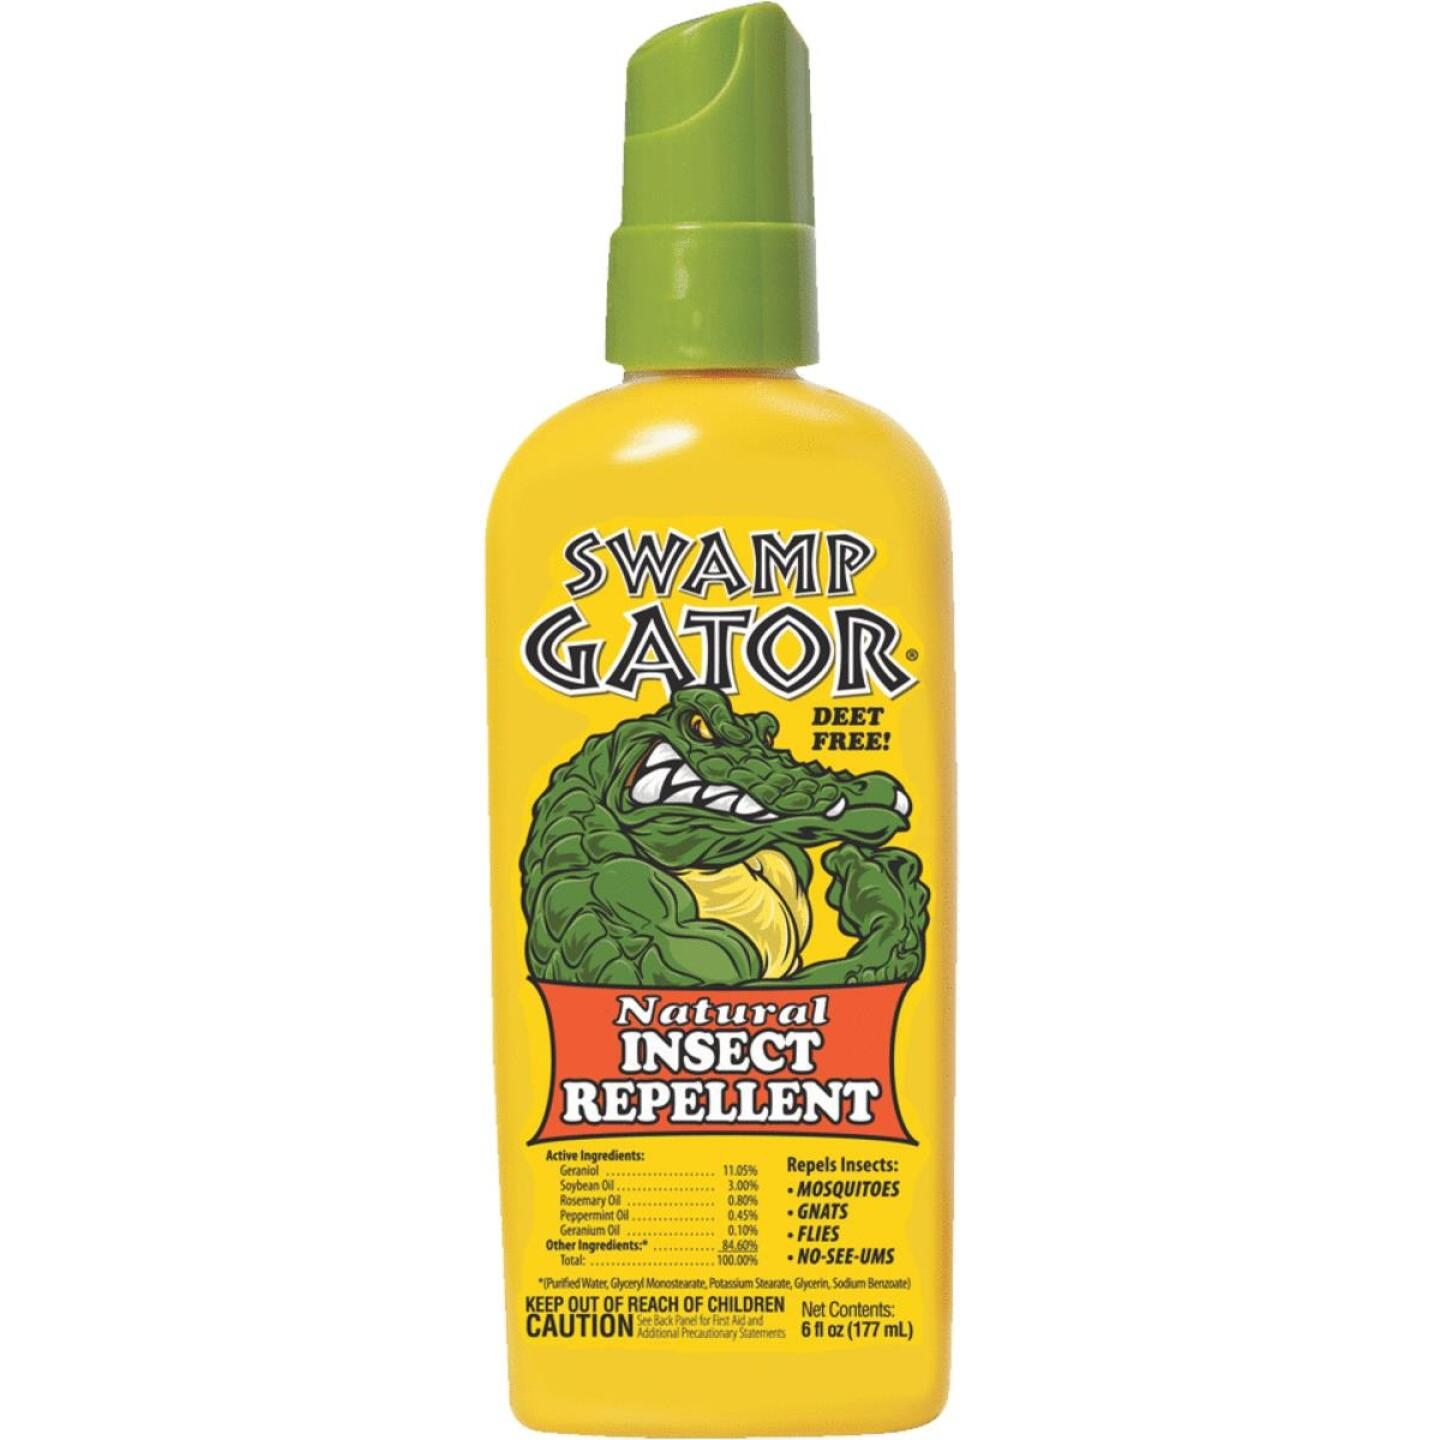 Swamp Gator 6 Oz. Insect Repellent Pump Spray Image 1